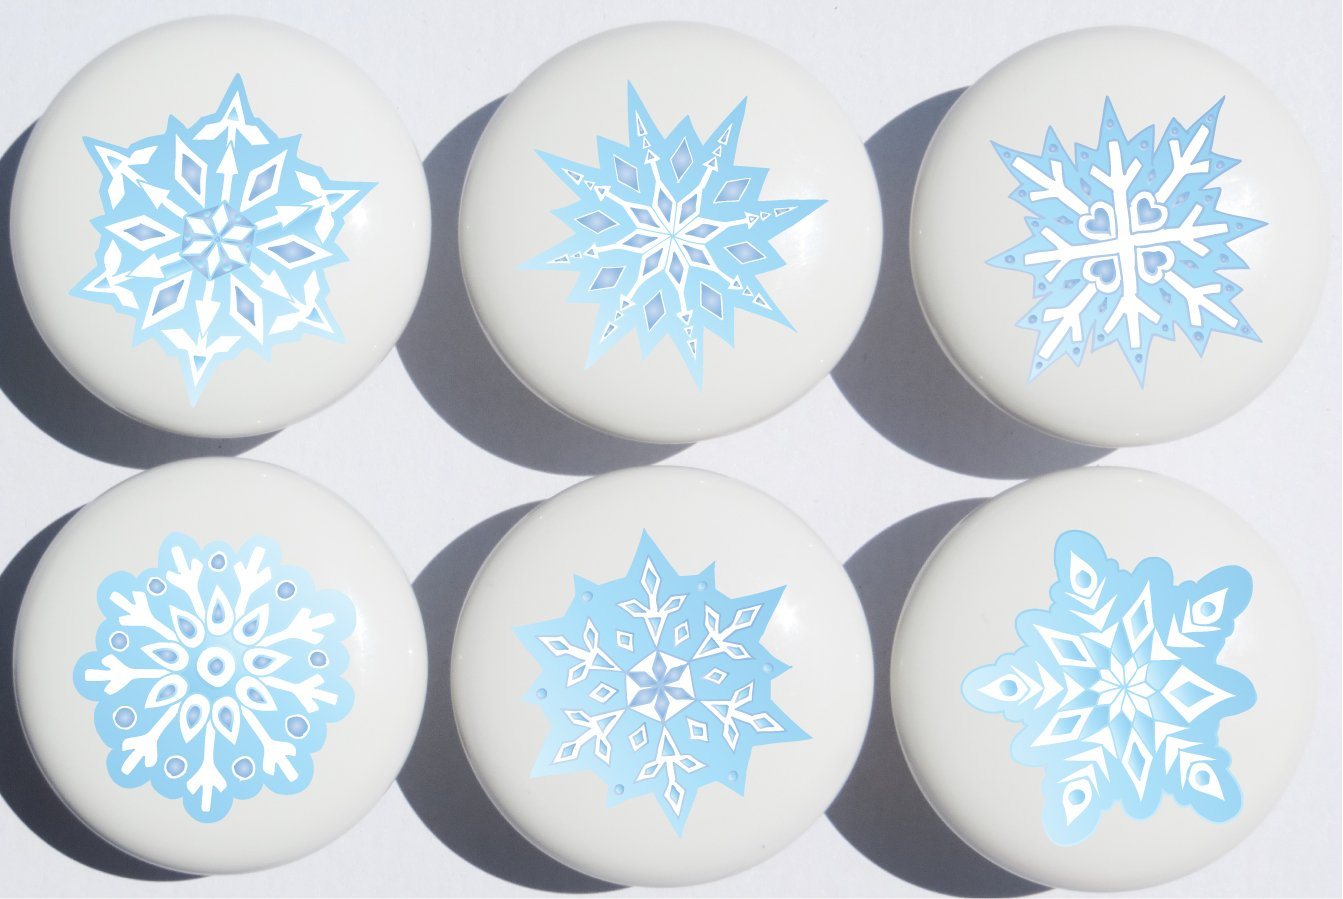 Blue Snow Flakes Ceramic Drawer Knobs / Snowflake Handle Pulls, Set of 6